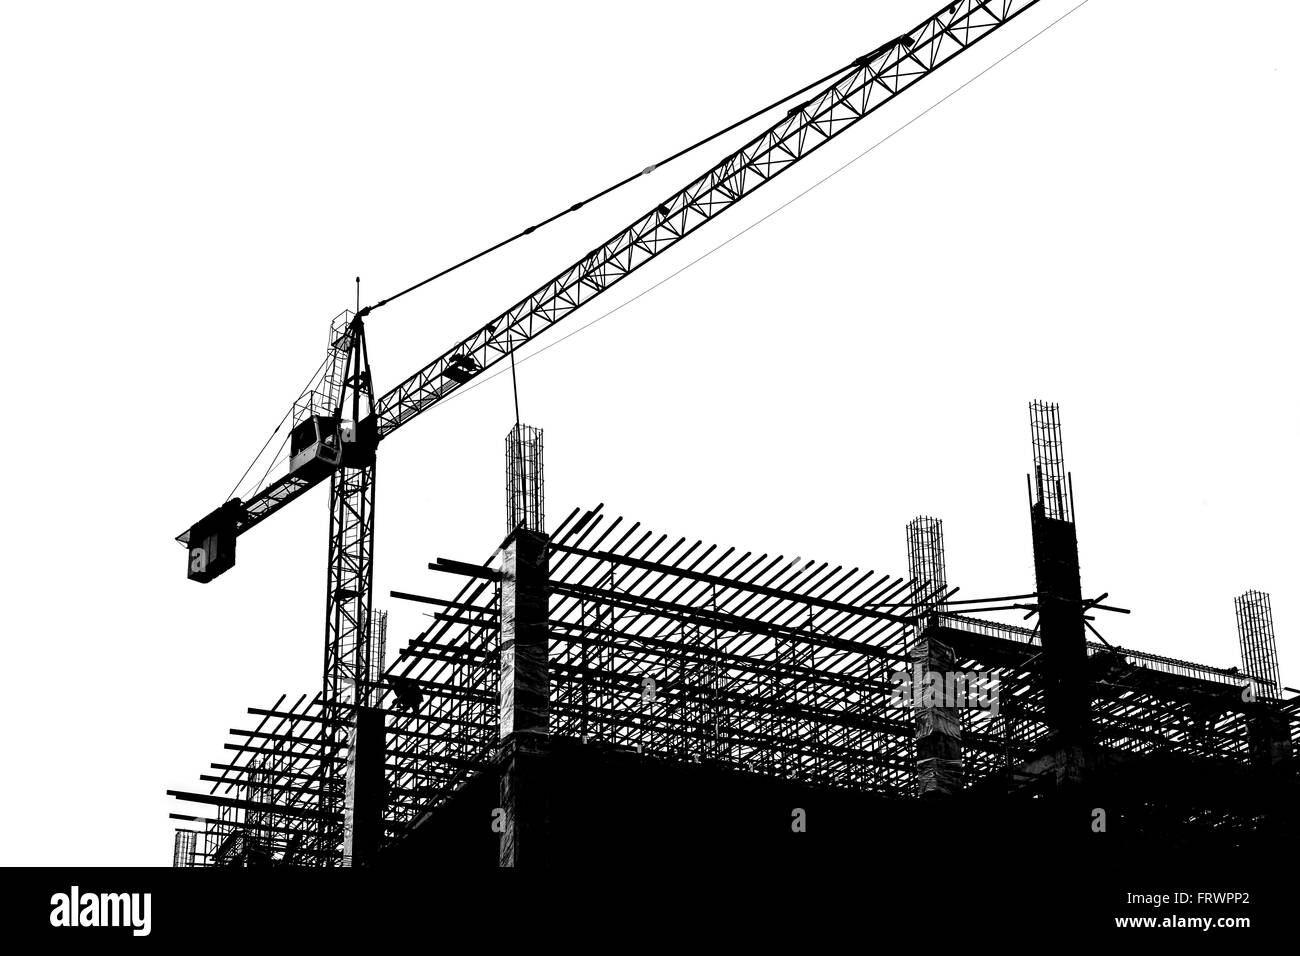 crane in construction site, abstract background, black and white - Stock Image